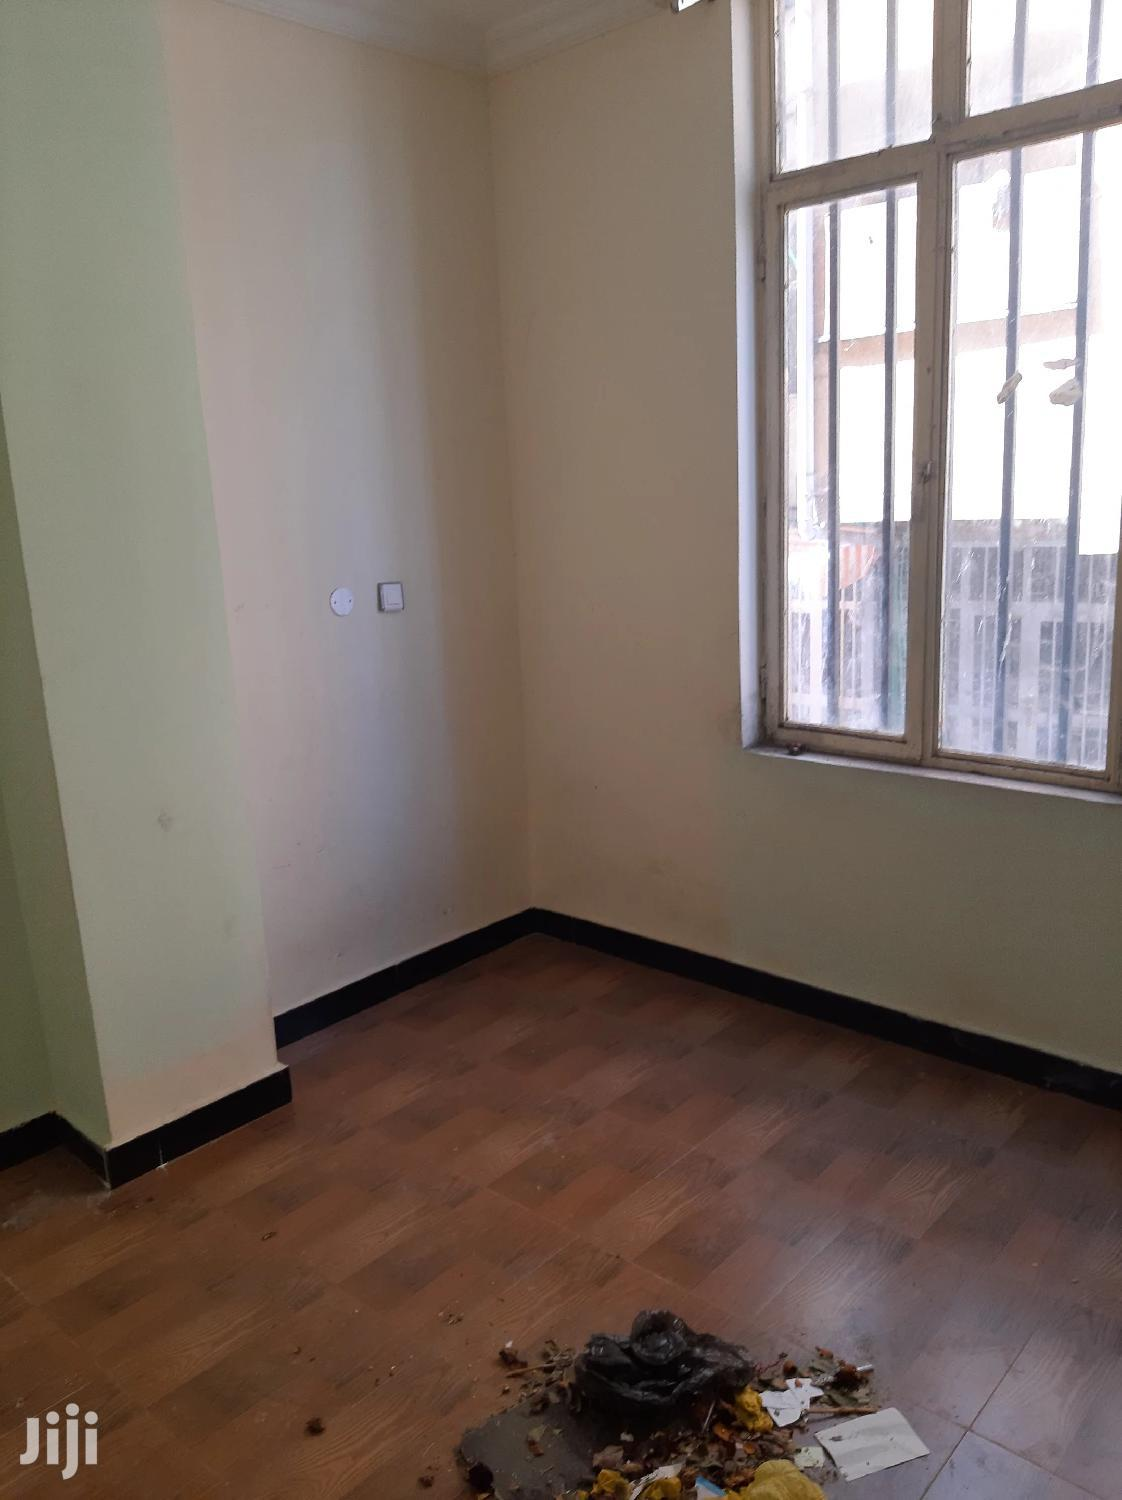 Furnished 3bdrm House in ሀይሌ ጋርመንት, Nifas Silk-Lafto for Sale | Houses & Apartments For Sale for sale in Nifas Silk-Lafto, Addis Ababa, Ethiopia